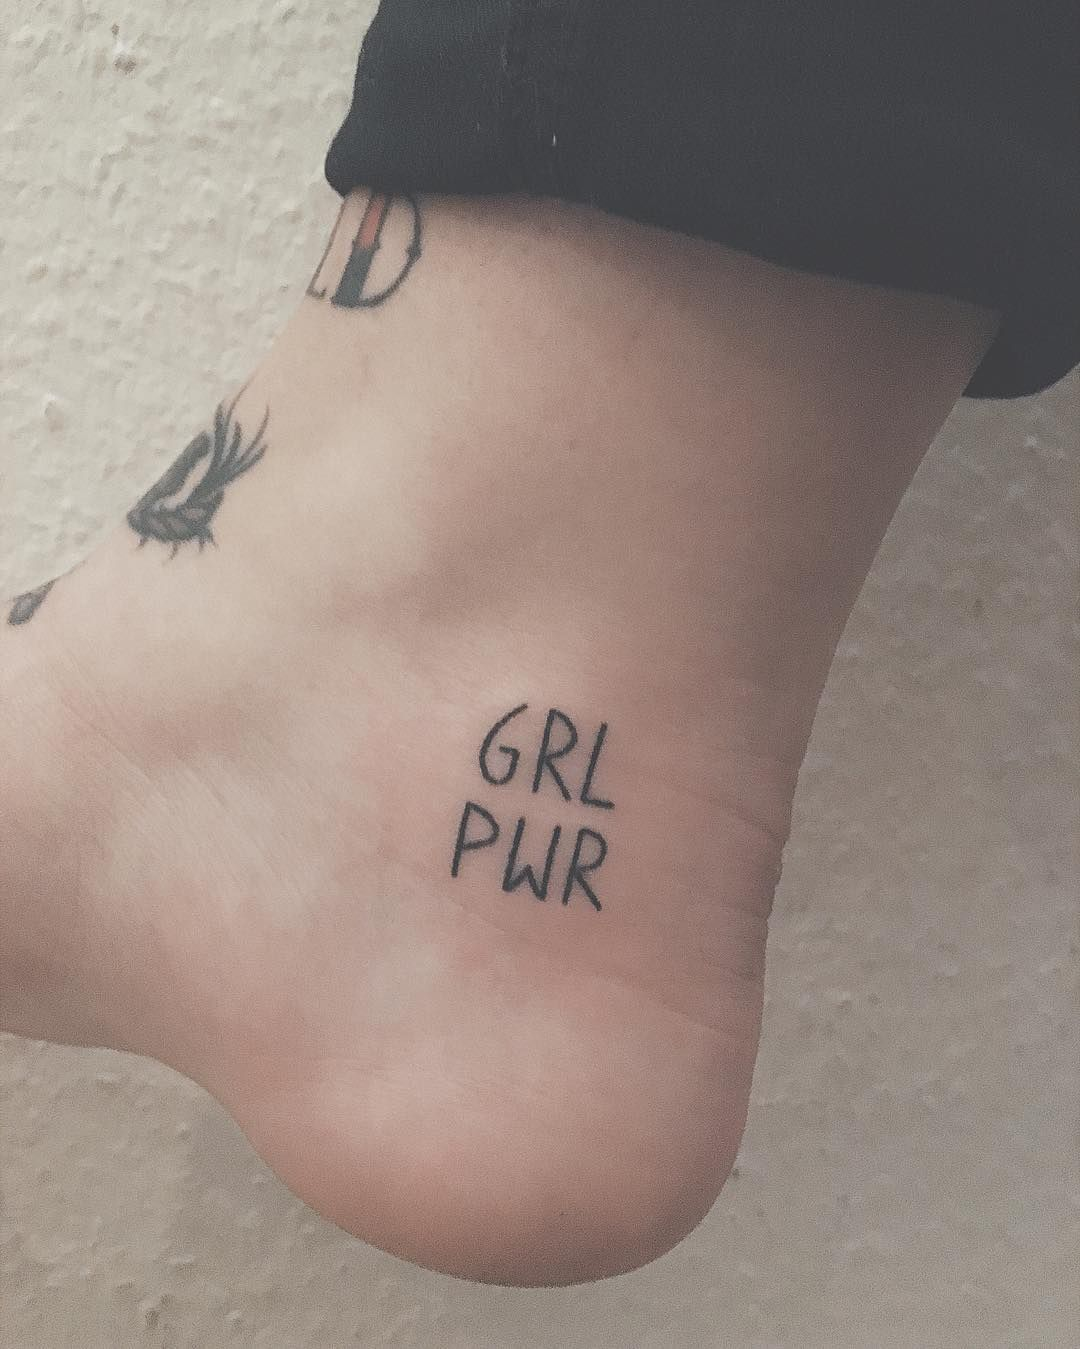 Handpoked, Tiny Tattoo for That 'Grl Pwr'(Small Tattoos